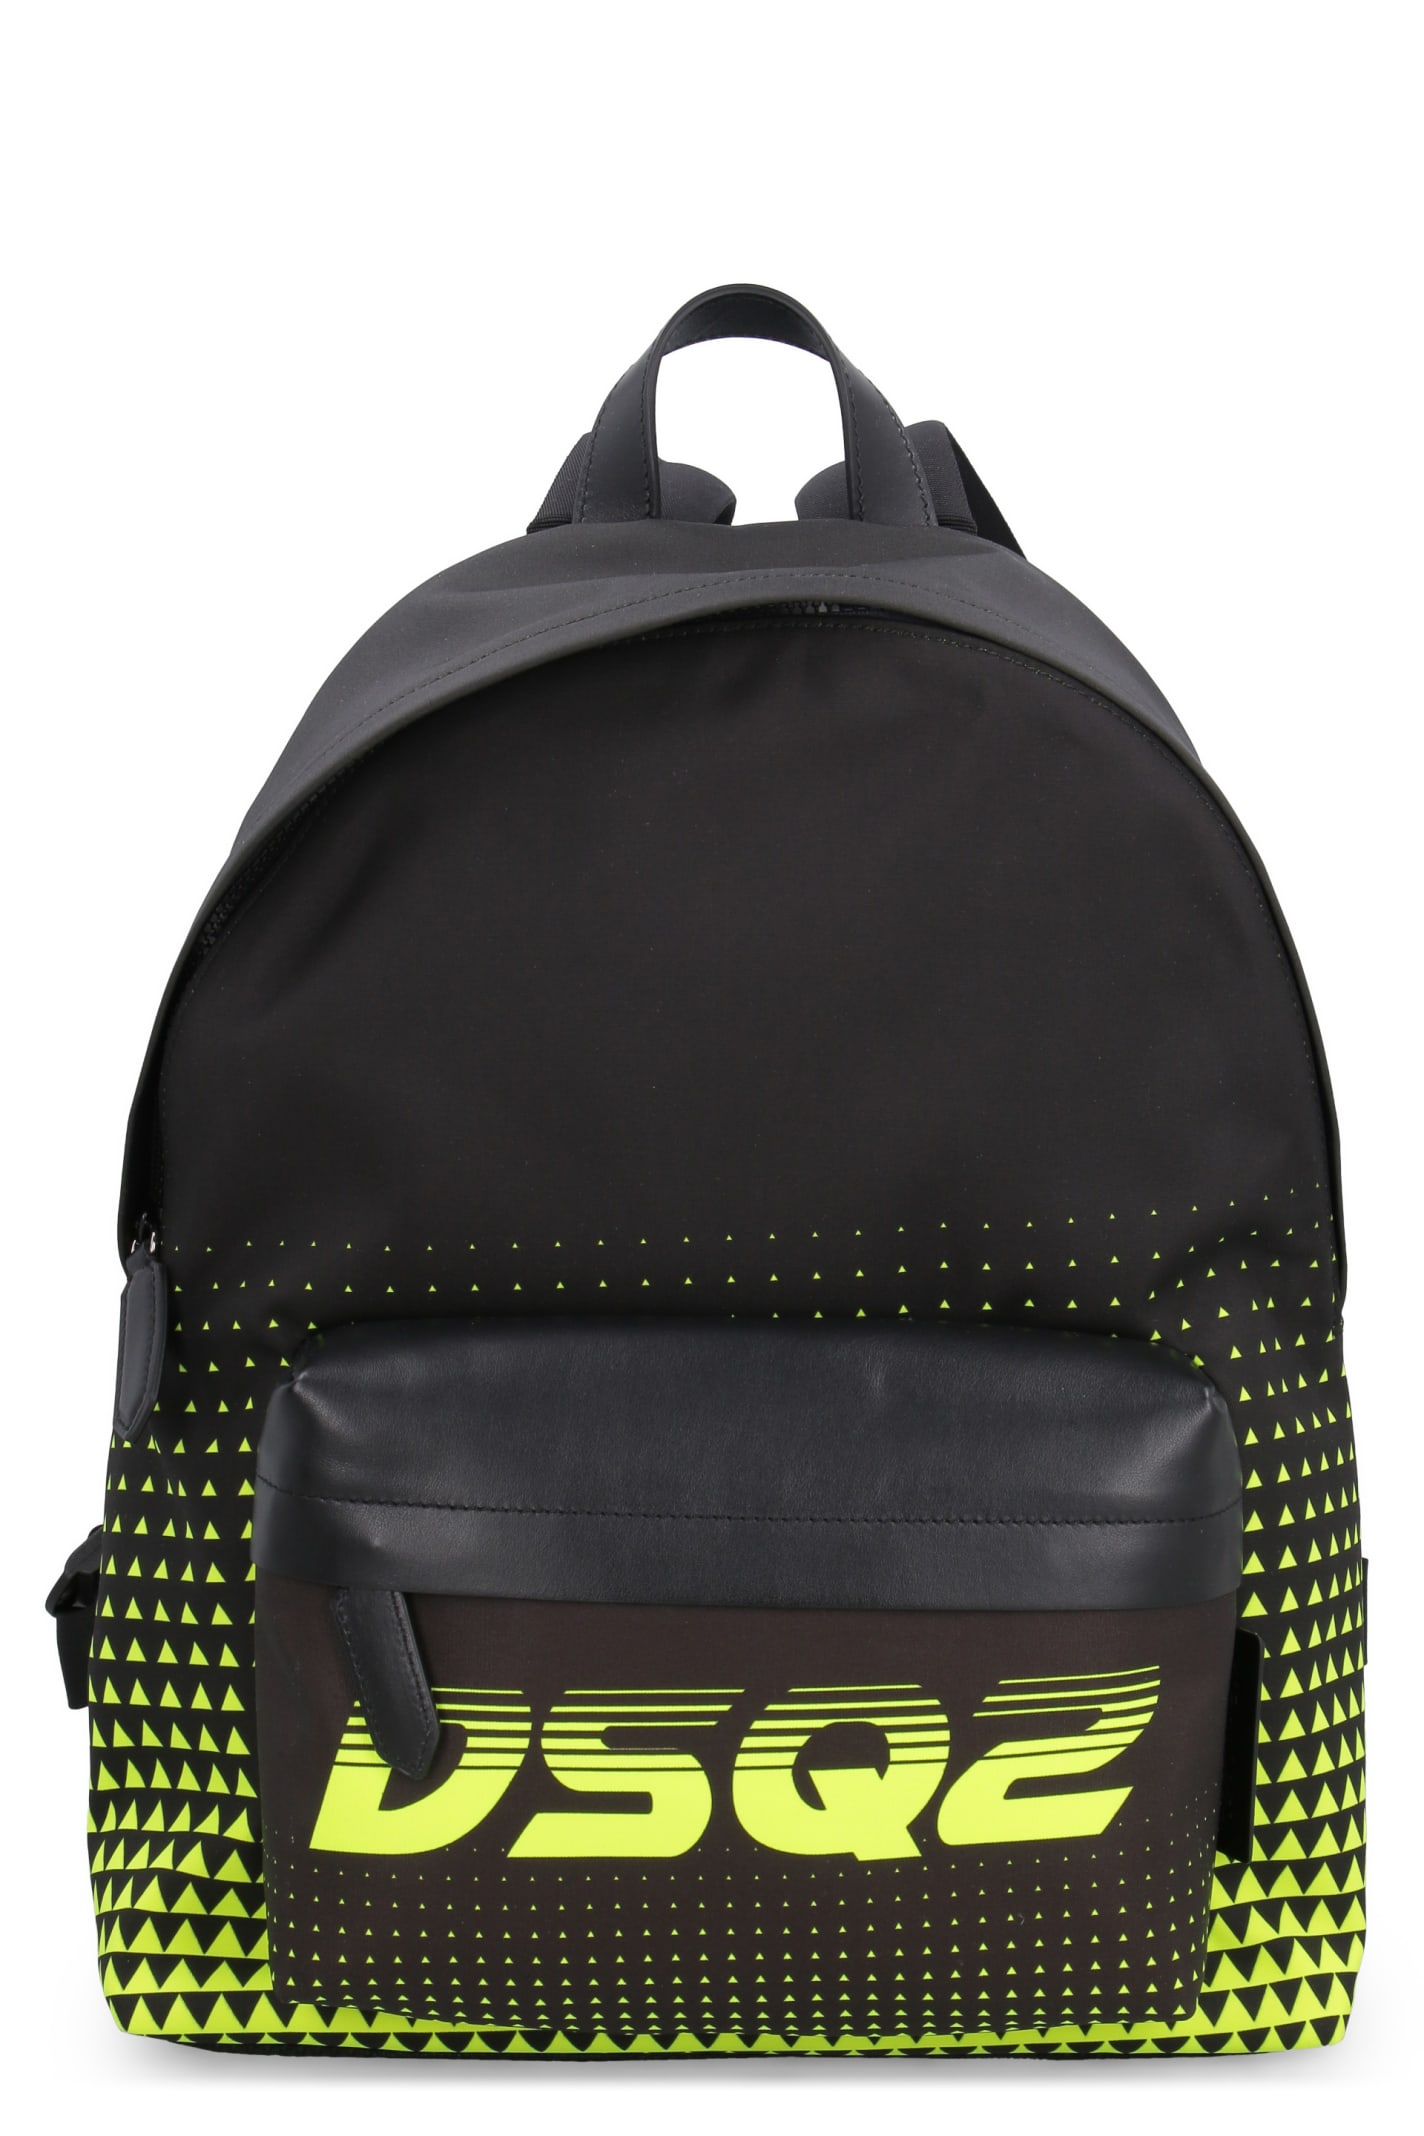 Dsquared2 Dsq2 Race Printed Nylon Backpack